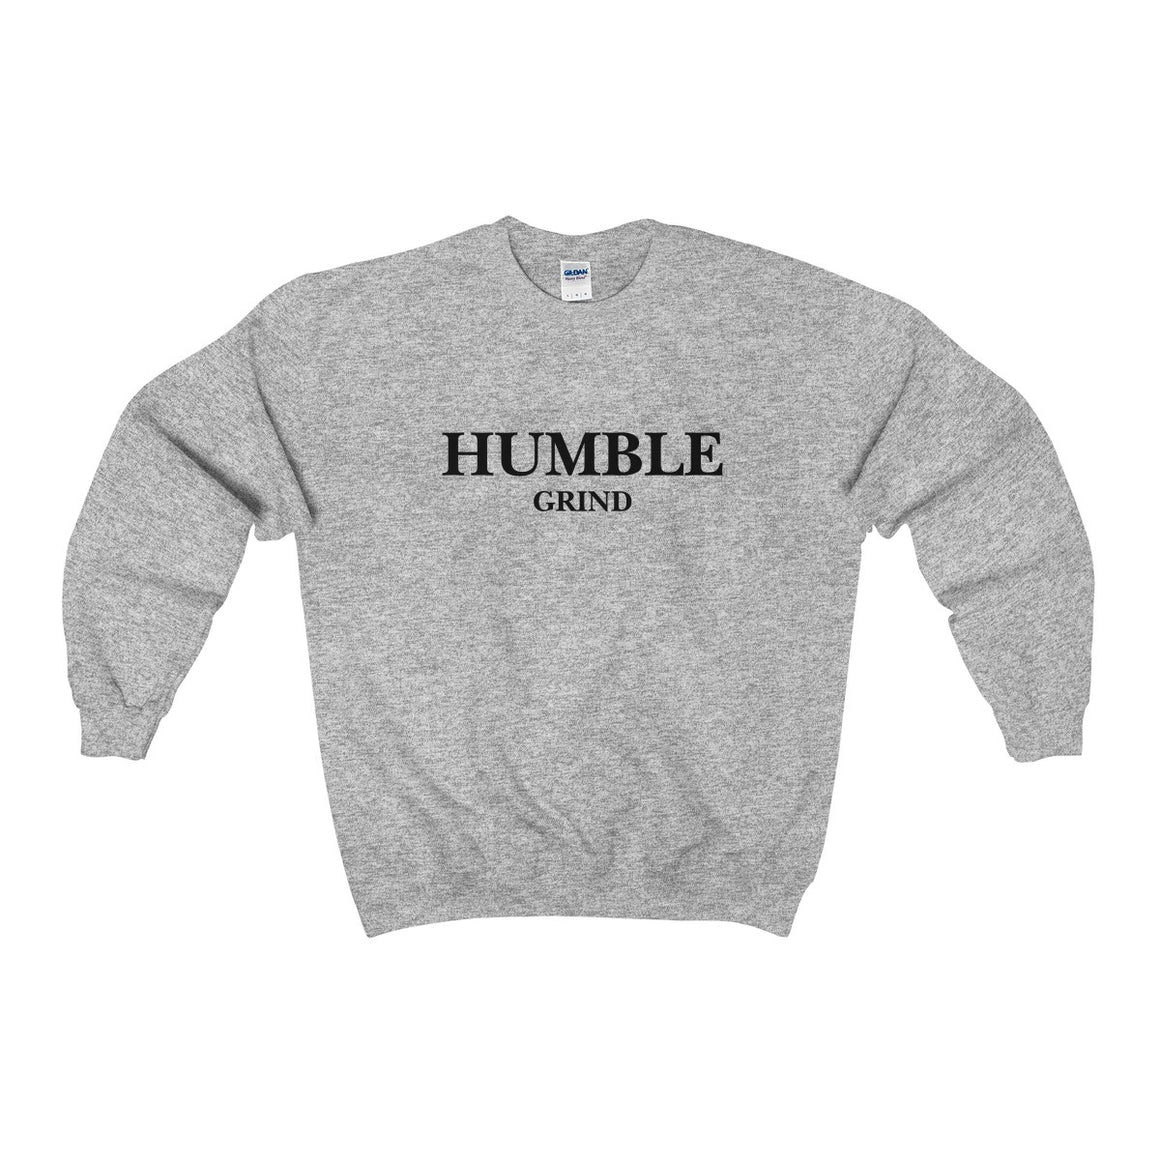 Cymonnes  Cymonnes , Humble Grind Sweatshirt Fashion, Sweatshirt dress , Sweatshirt jeans